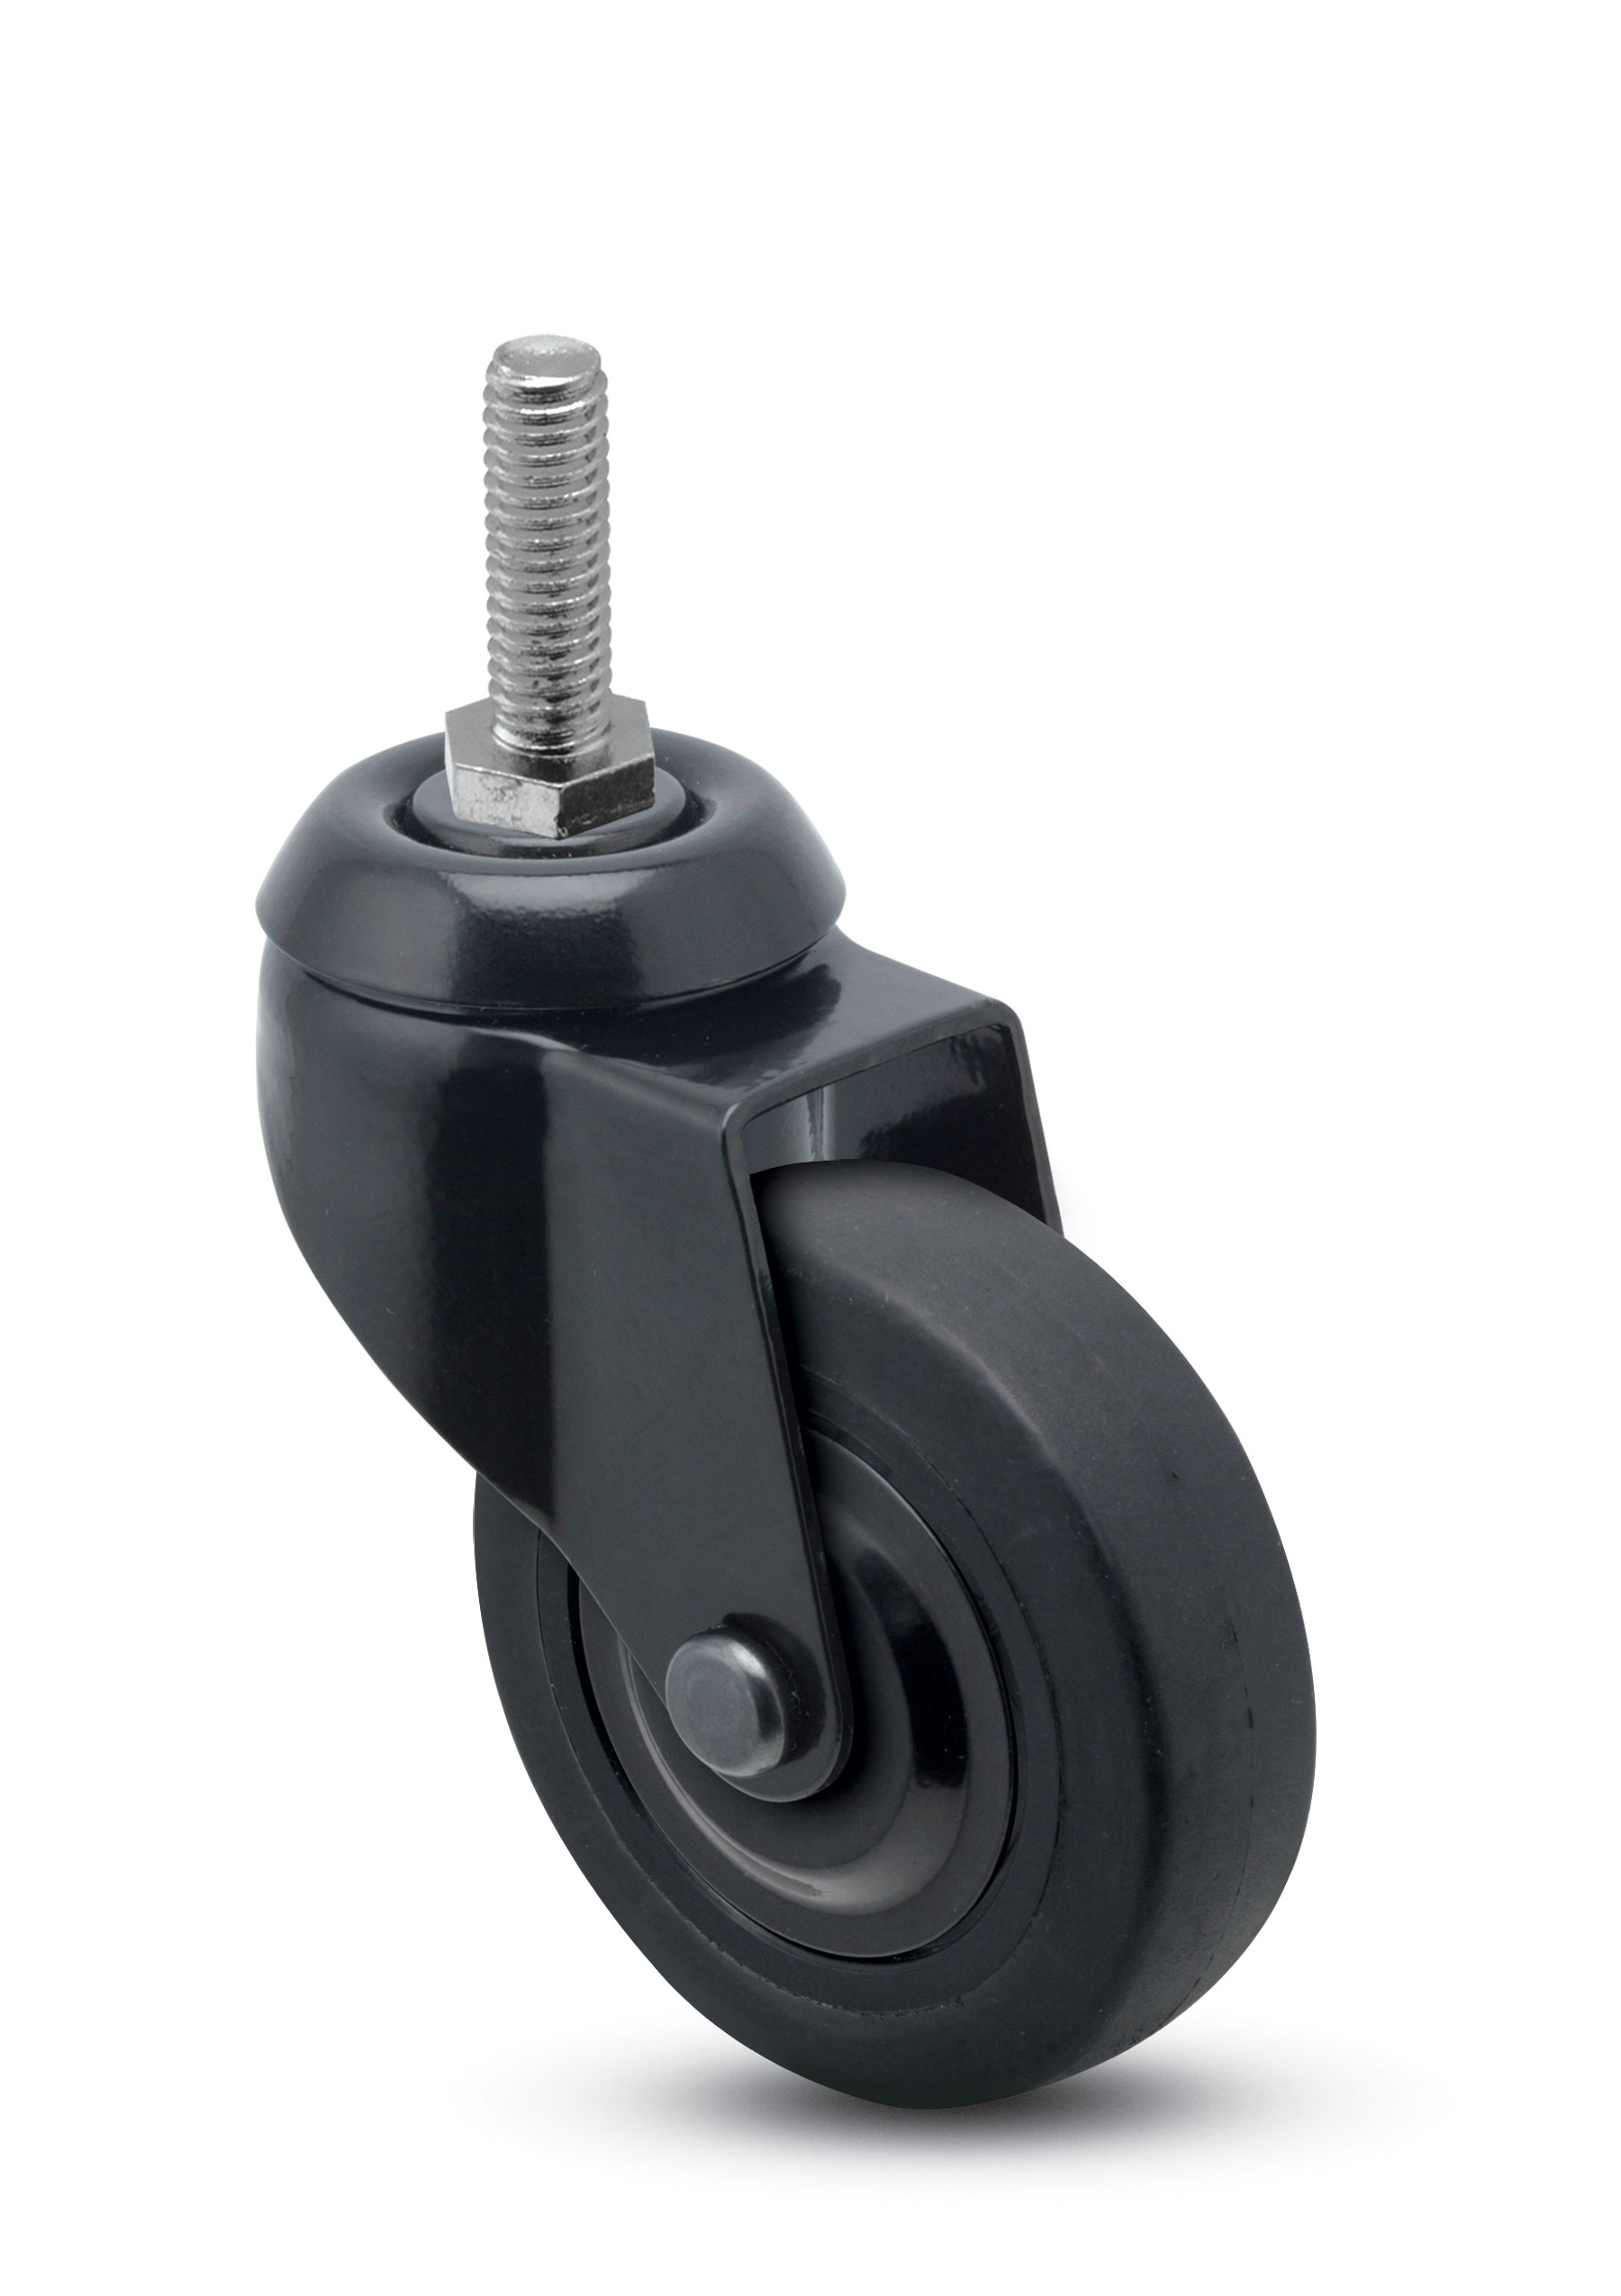 chair casters threaded stem green bungee caster swivel 3 x 15 16 thermoplastized rubber black 5 18tpi 1 plain bore 110 thrd grds 67965 8 24 apollo